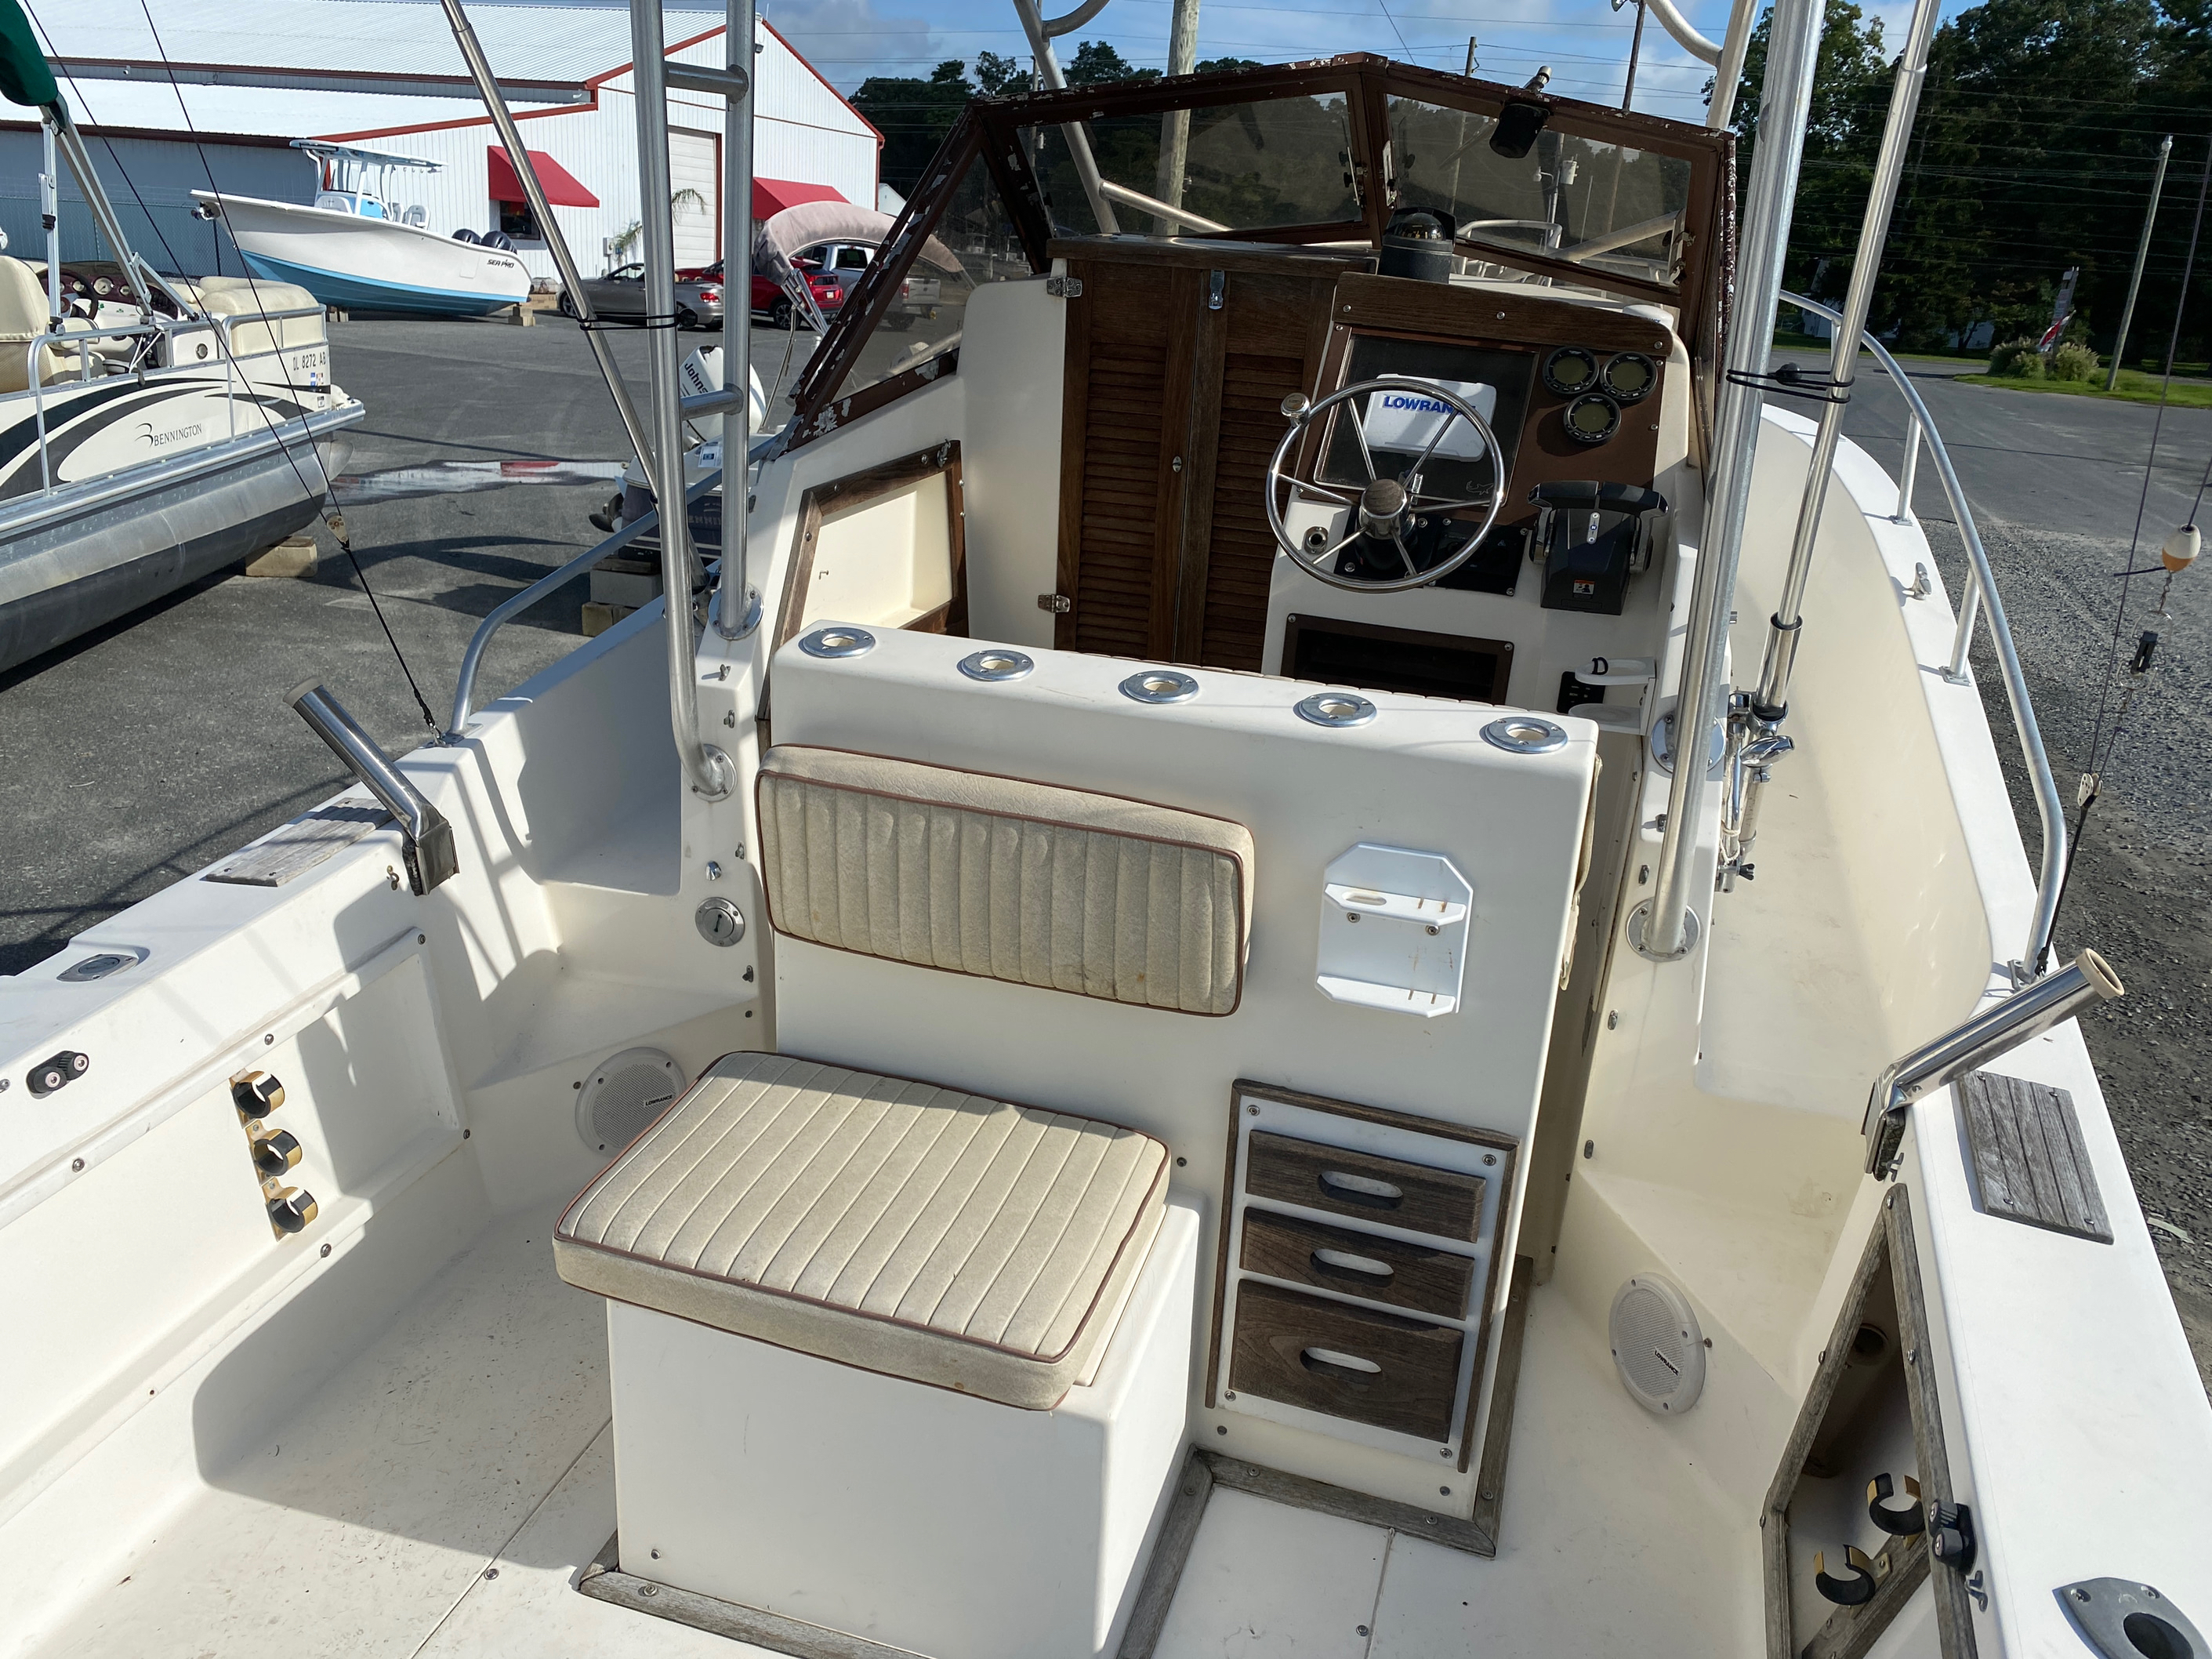 1998 Mako boat for sale, model of the boat is 260 Walkaround & Image # 8 of 15